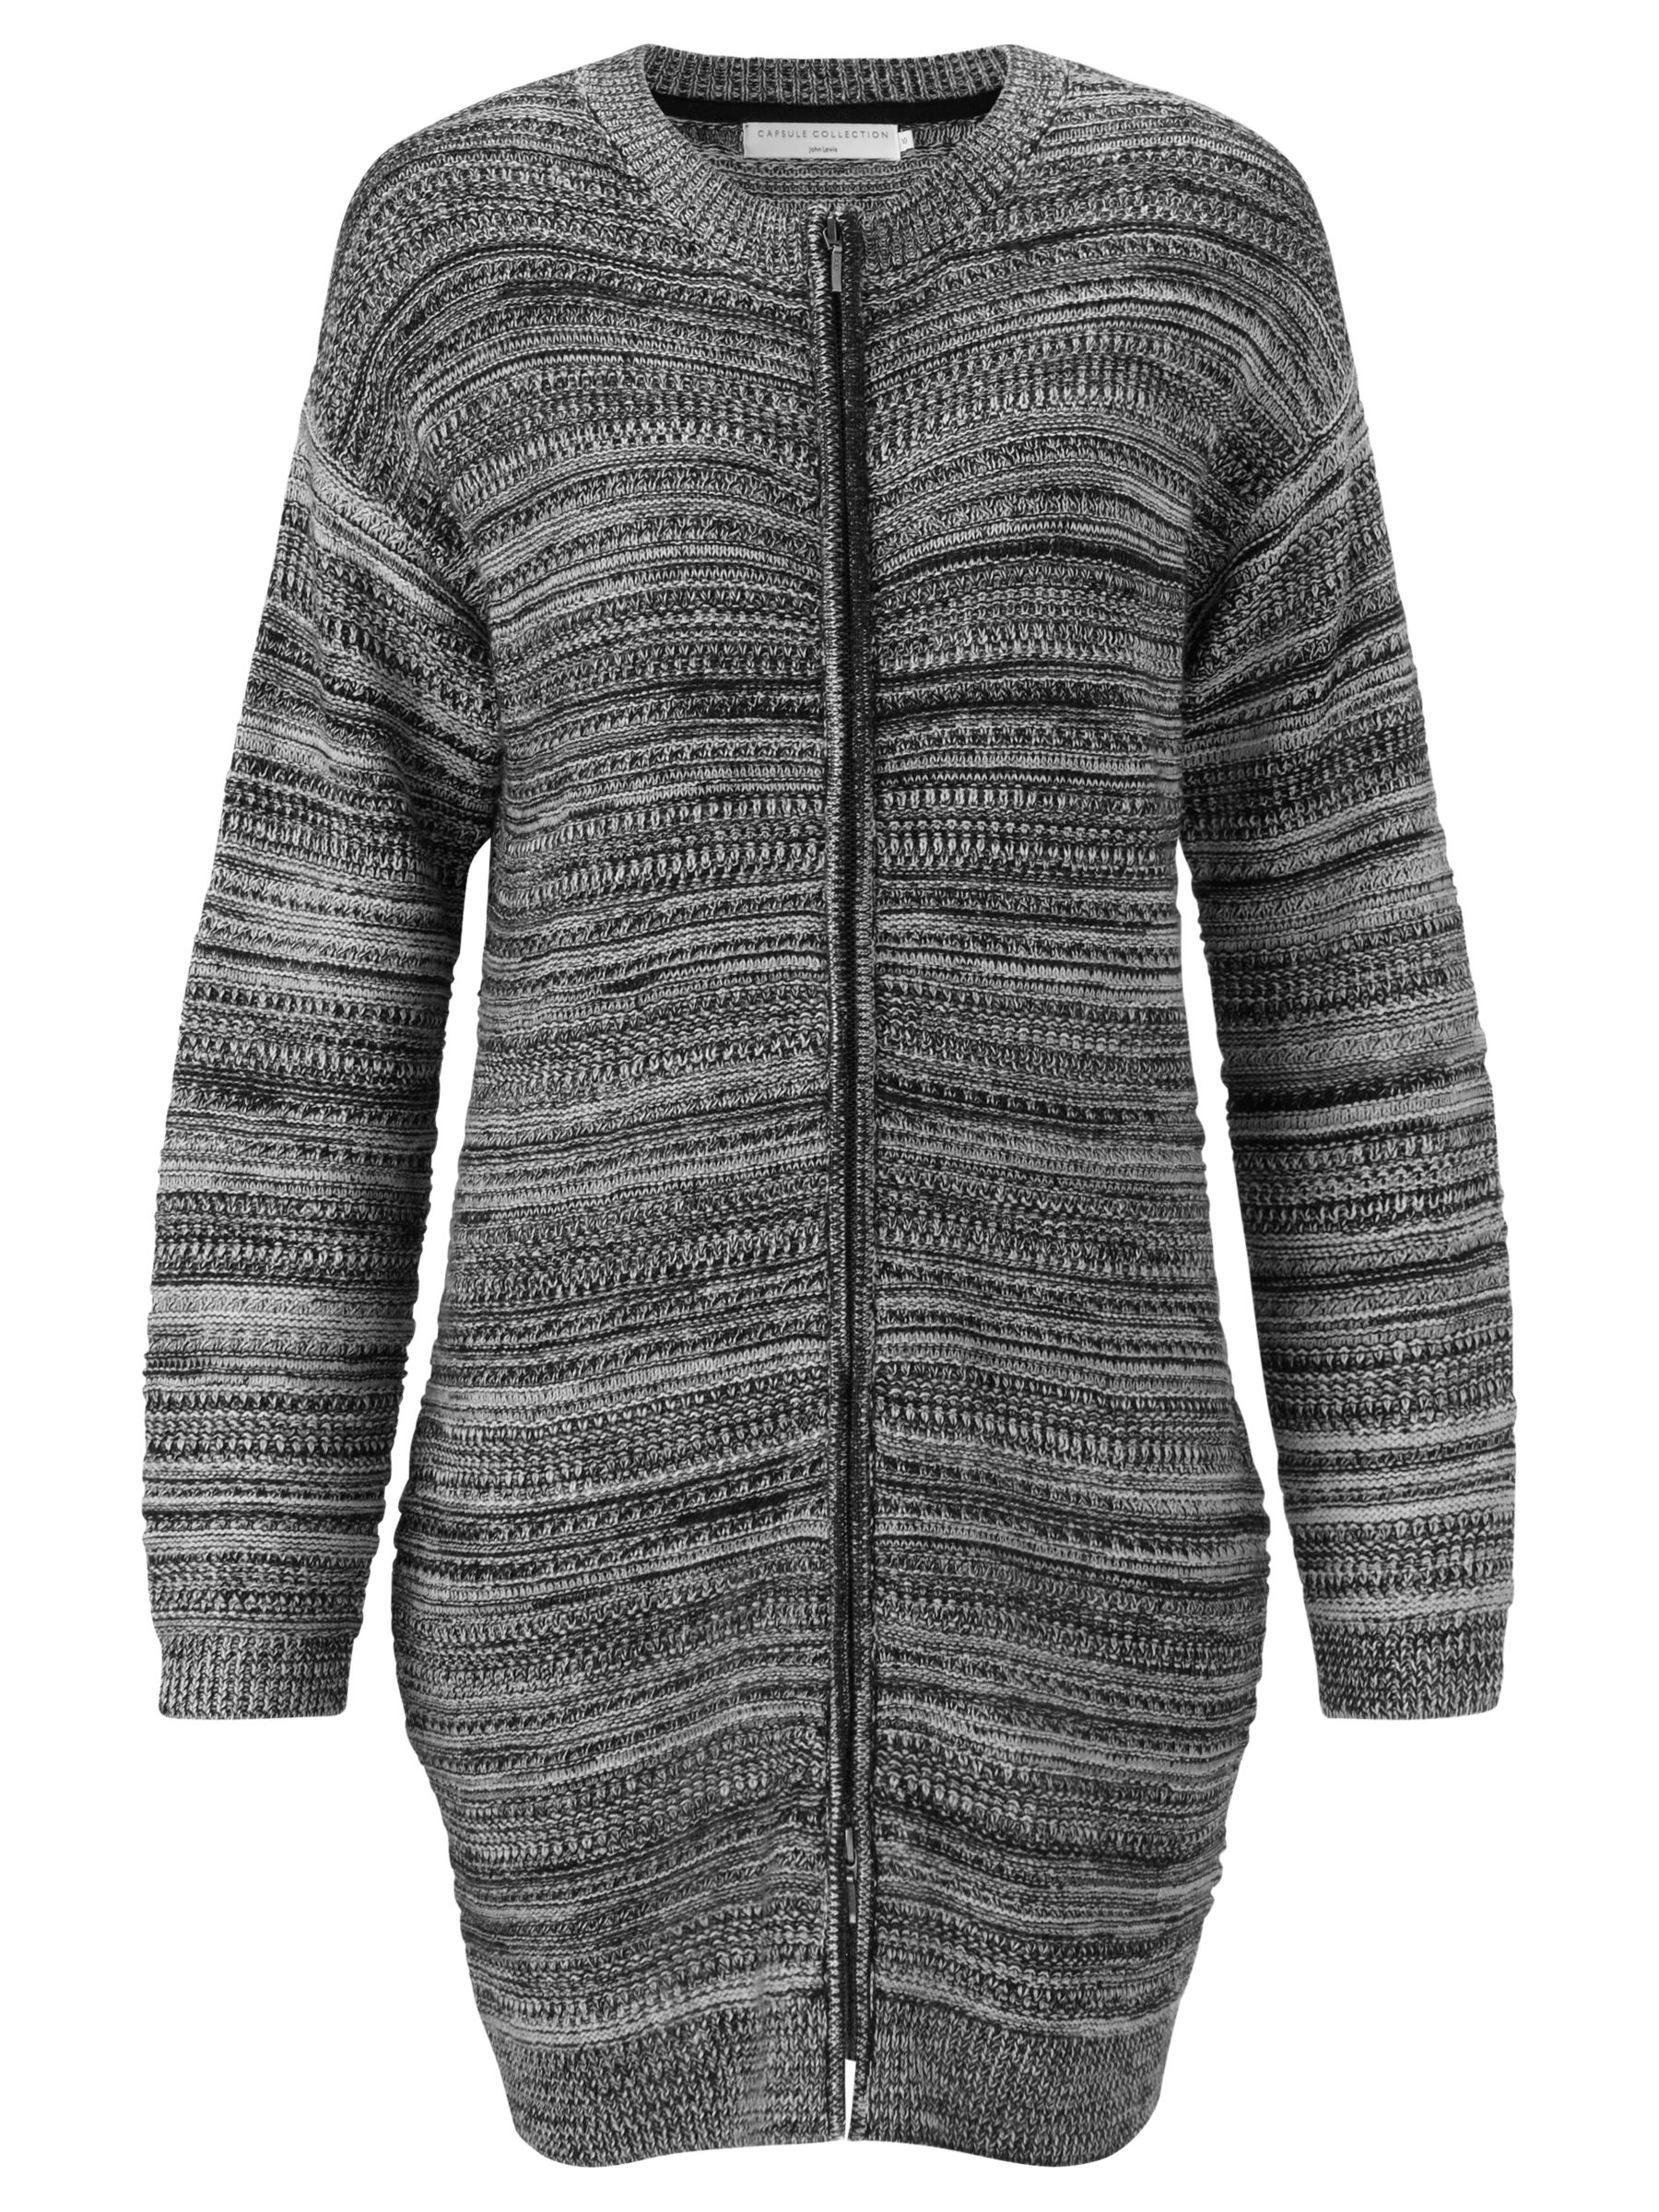 john lewis capsule collection textured stripe long cardigan black/putty, john, lewis, capsule, collection, textured, stripe, long, cardigan, black/putty, john lewis capsule collection, 10 14 16 18 12, clearance, womenswear offers, john lewis brands, special offers, women, womens dresses, womens knitwear, womens dresses offers, latest reductions, brands a-k, 1739259